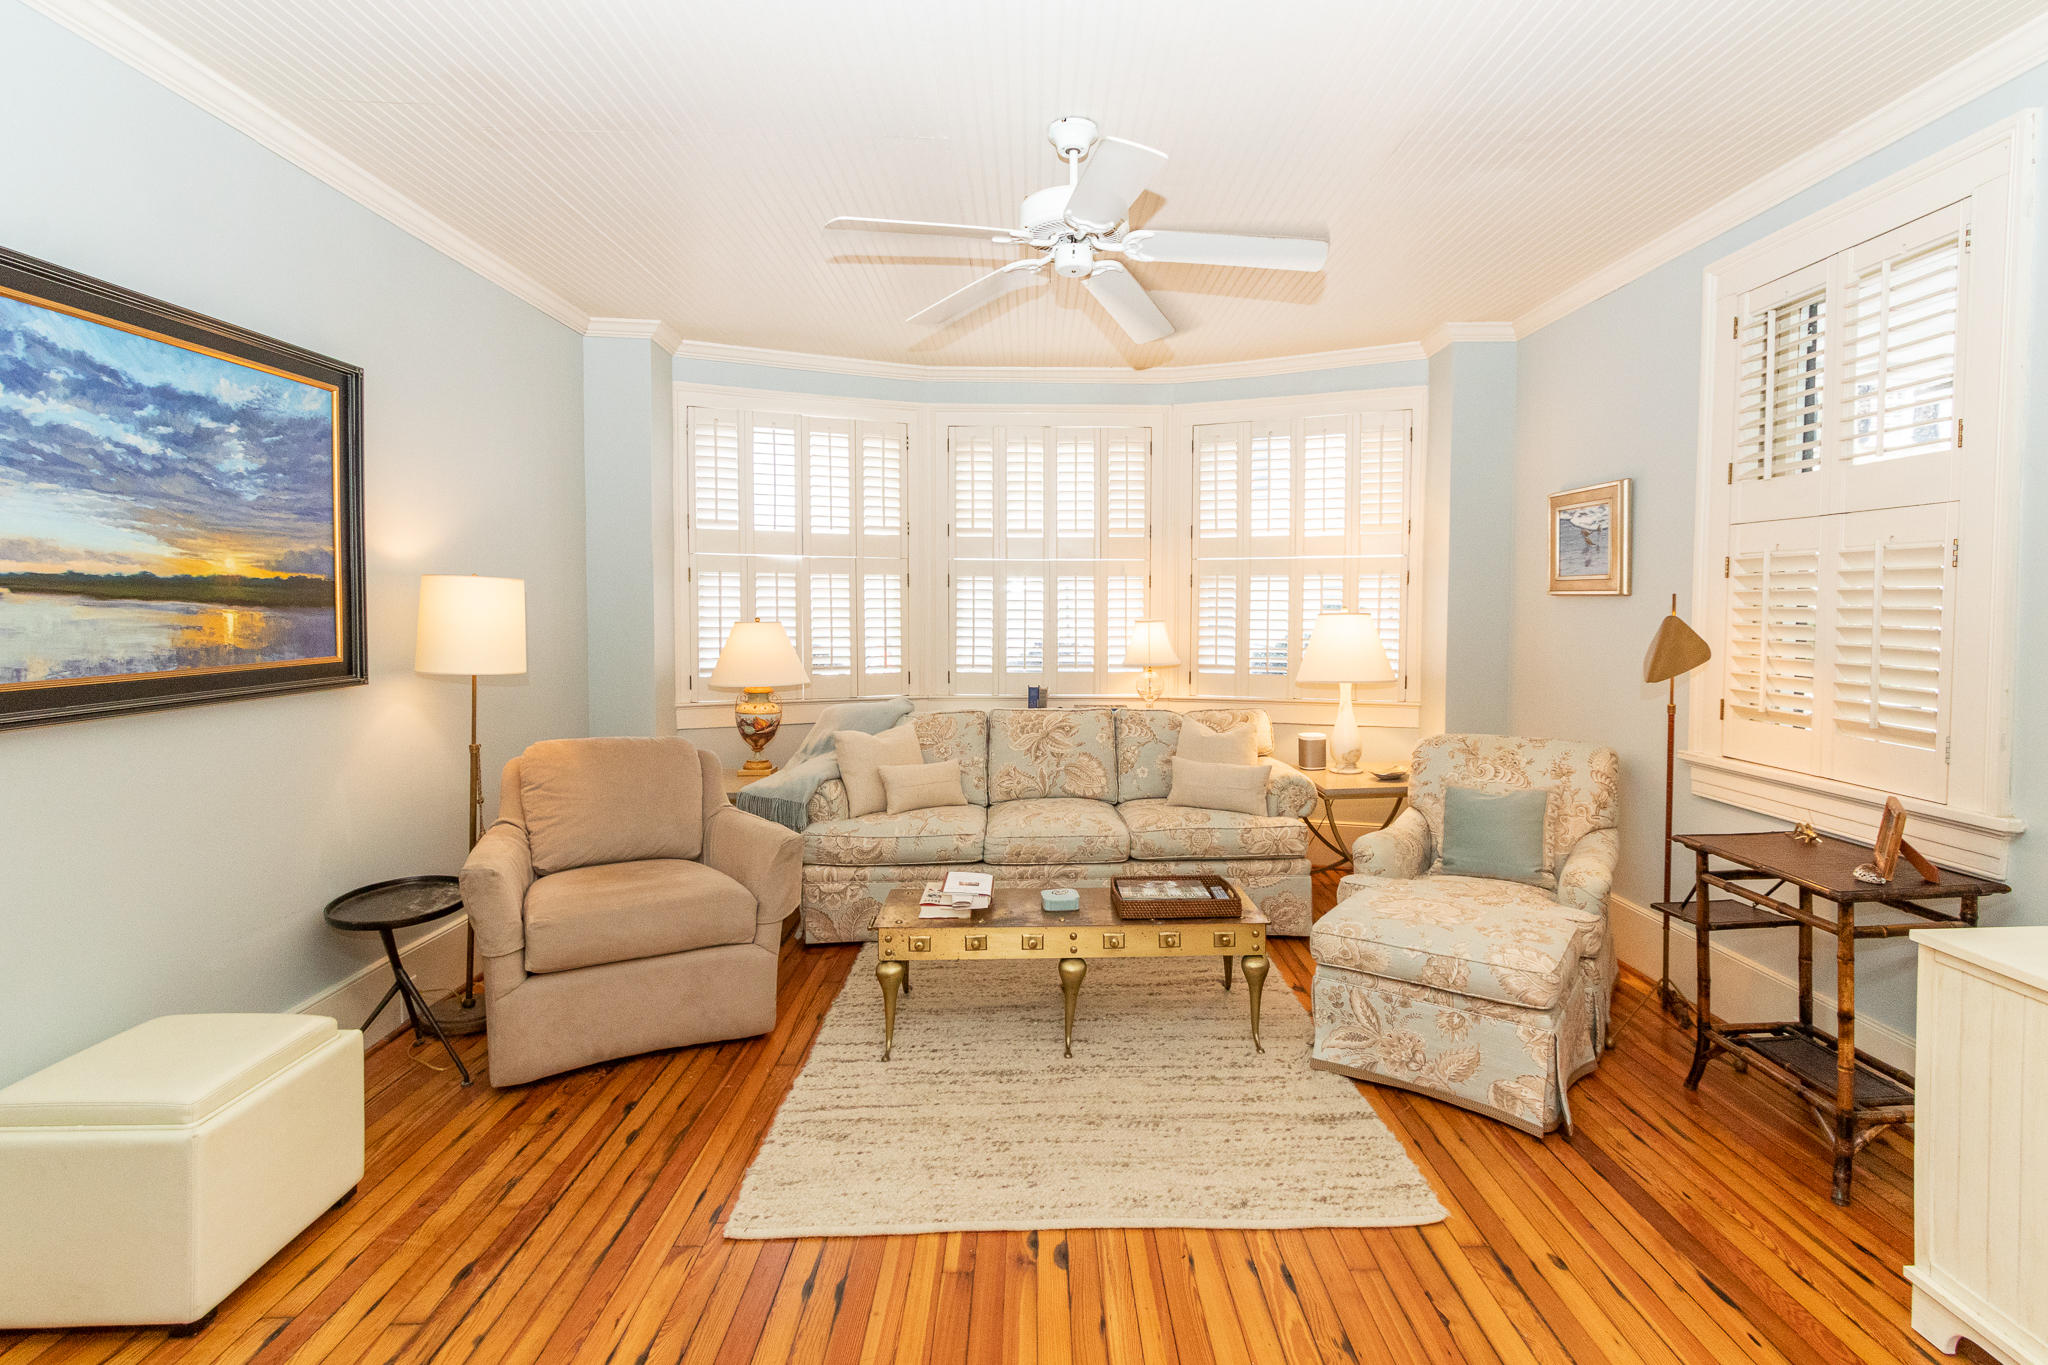 South of Broad Homes For Sale - 164 Tradd, Charleston, SC - 35